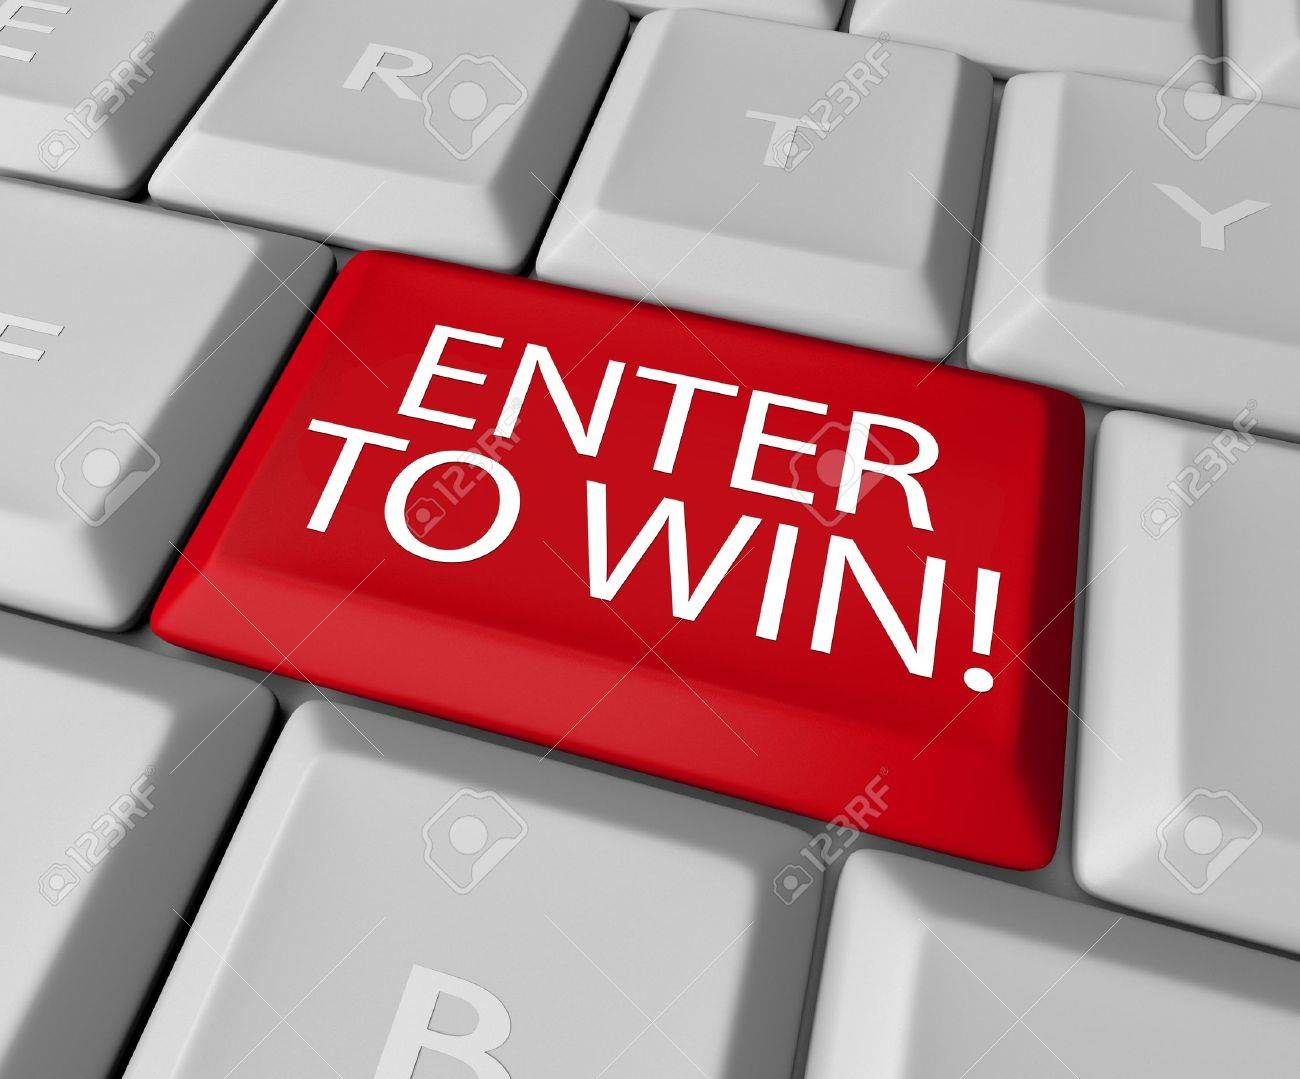 win bet stock photos pictures royalty win bet images and win bet a red key on a computer keyboard the words enter to win